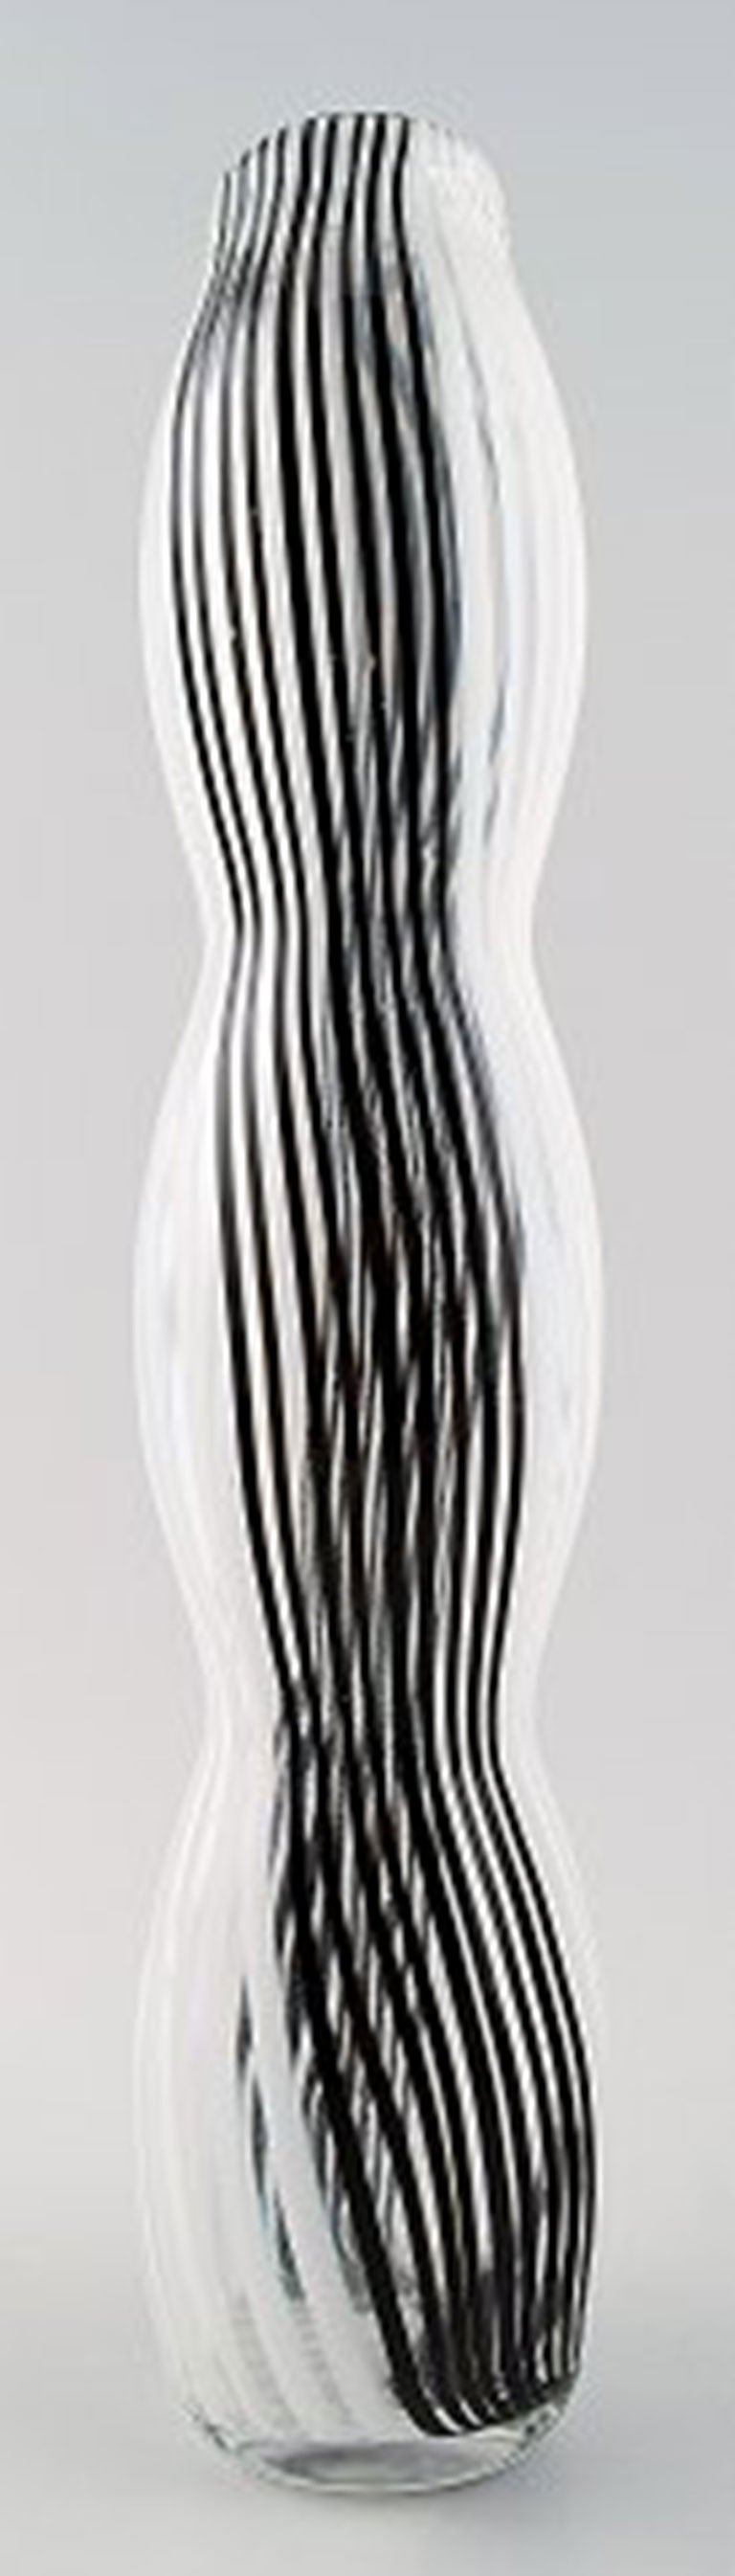 Murano large art glass vase unstamped black and white striped modern murano large art glass vase unstamped black and white striped for sale reviewsmspy